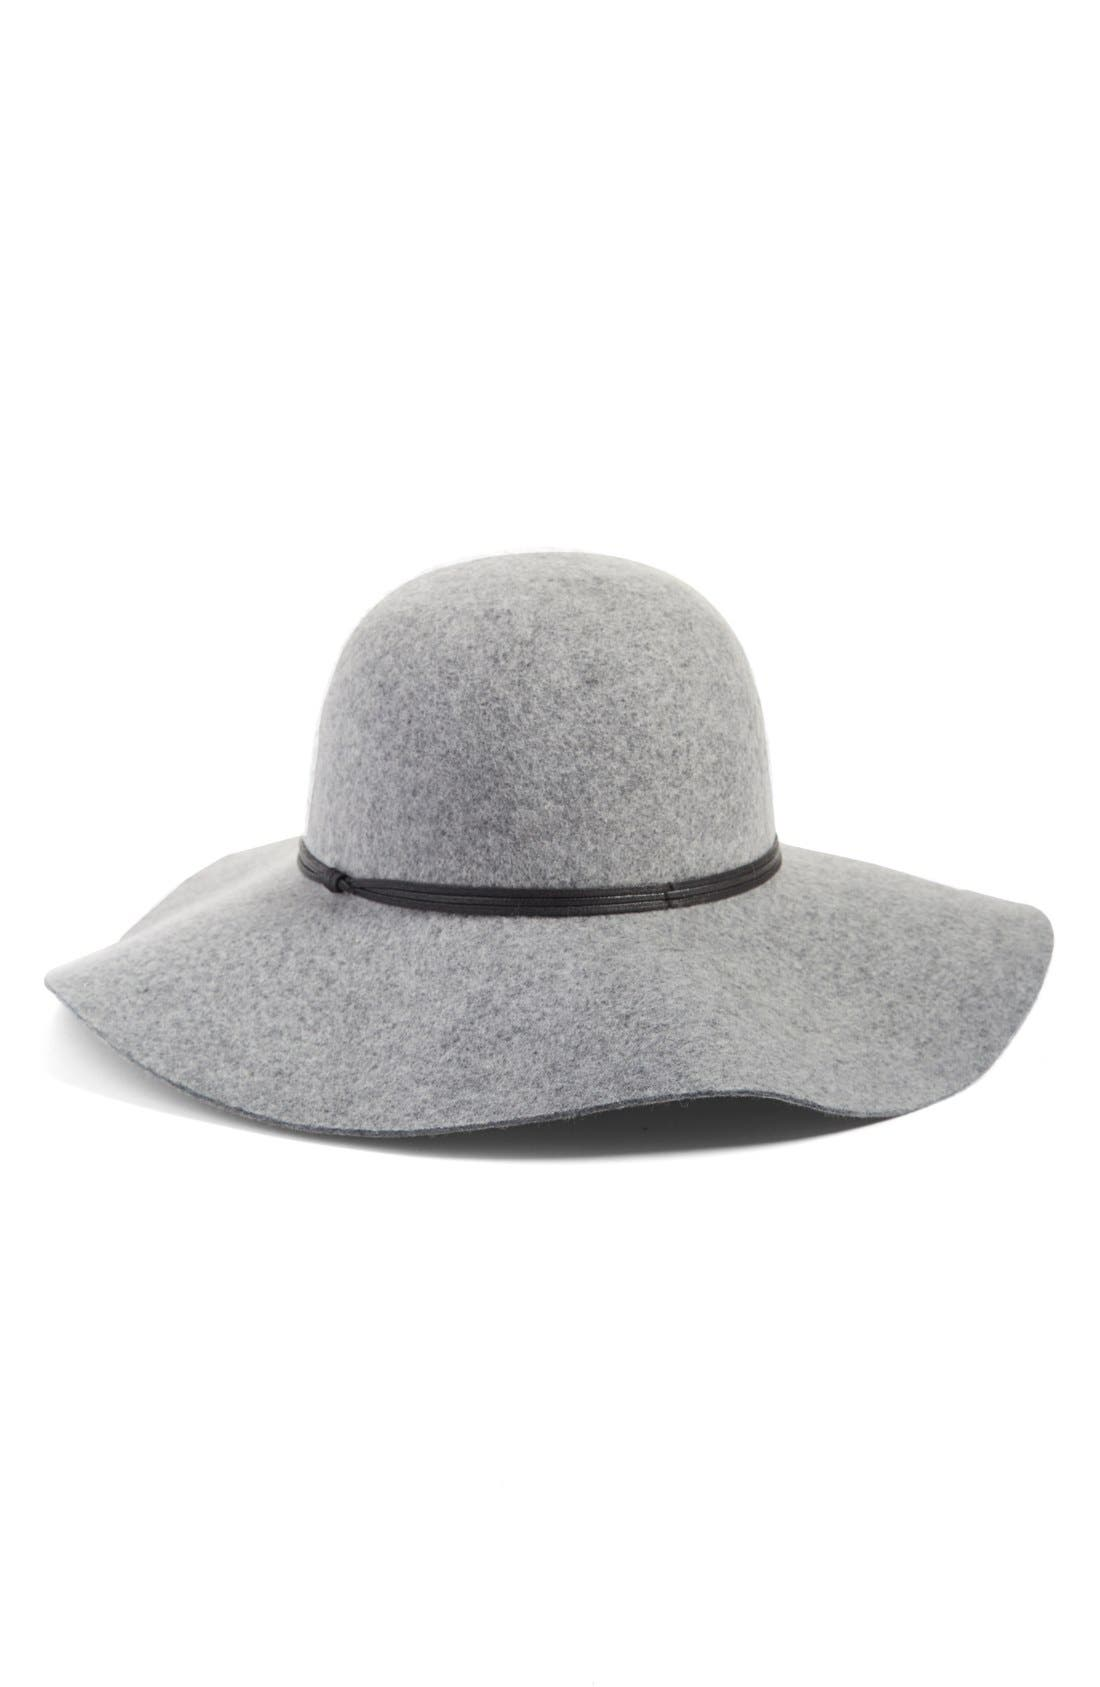 HINGE, Floppy Wool Hat, Main thumbnail 1, color, GREY LIGHT HEATHER